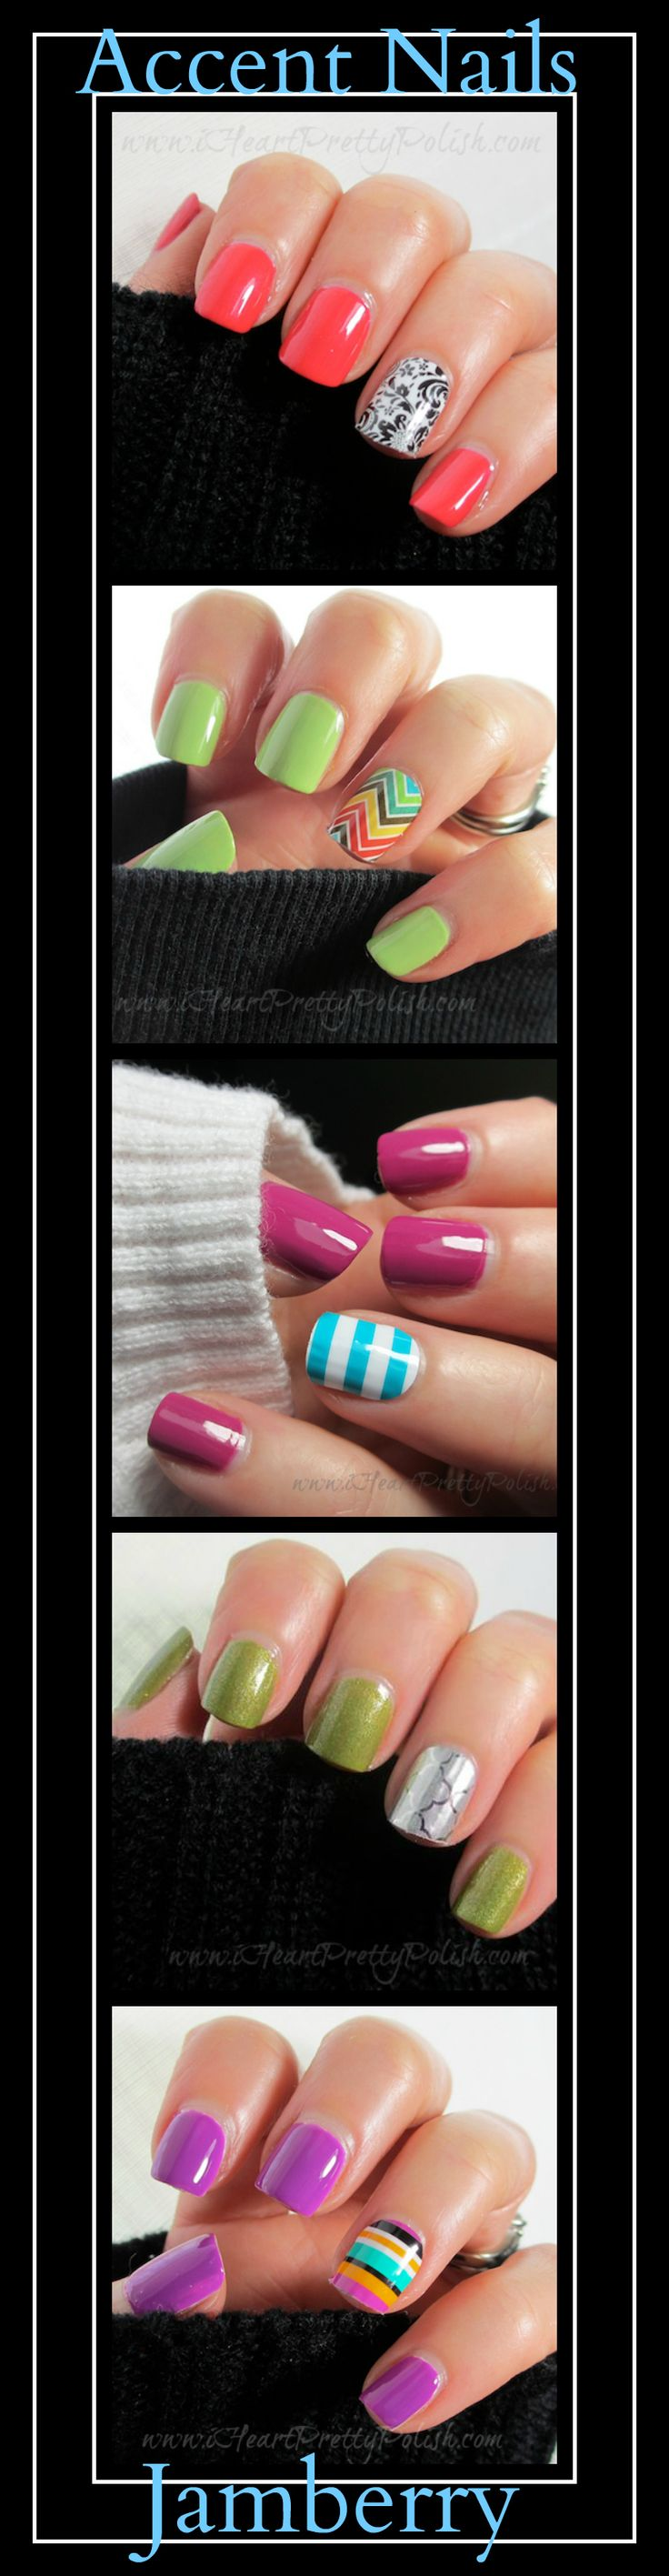 Accent Nails!